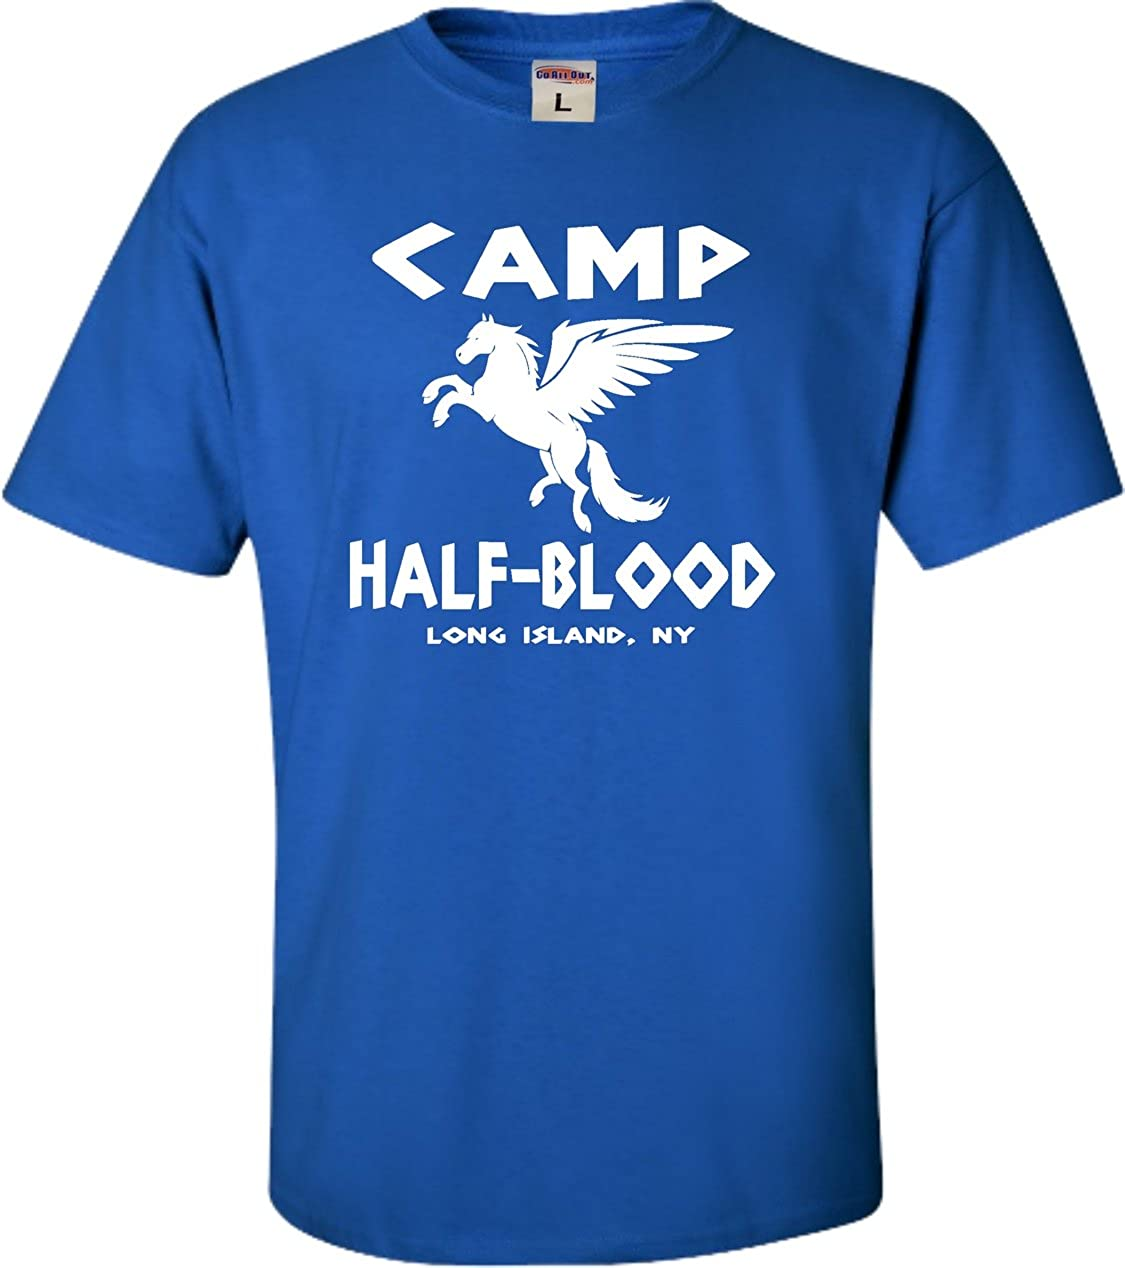 Go All Out Screenprinting Youth Camp Half-Blood T-Shirt